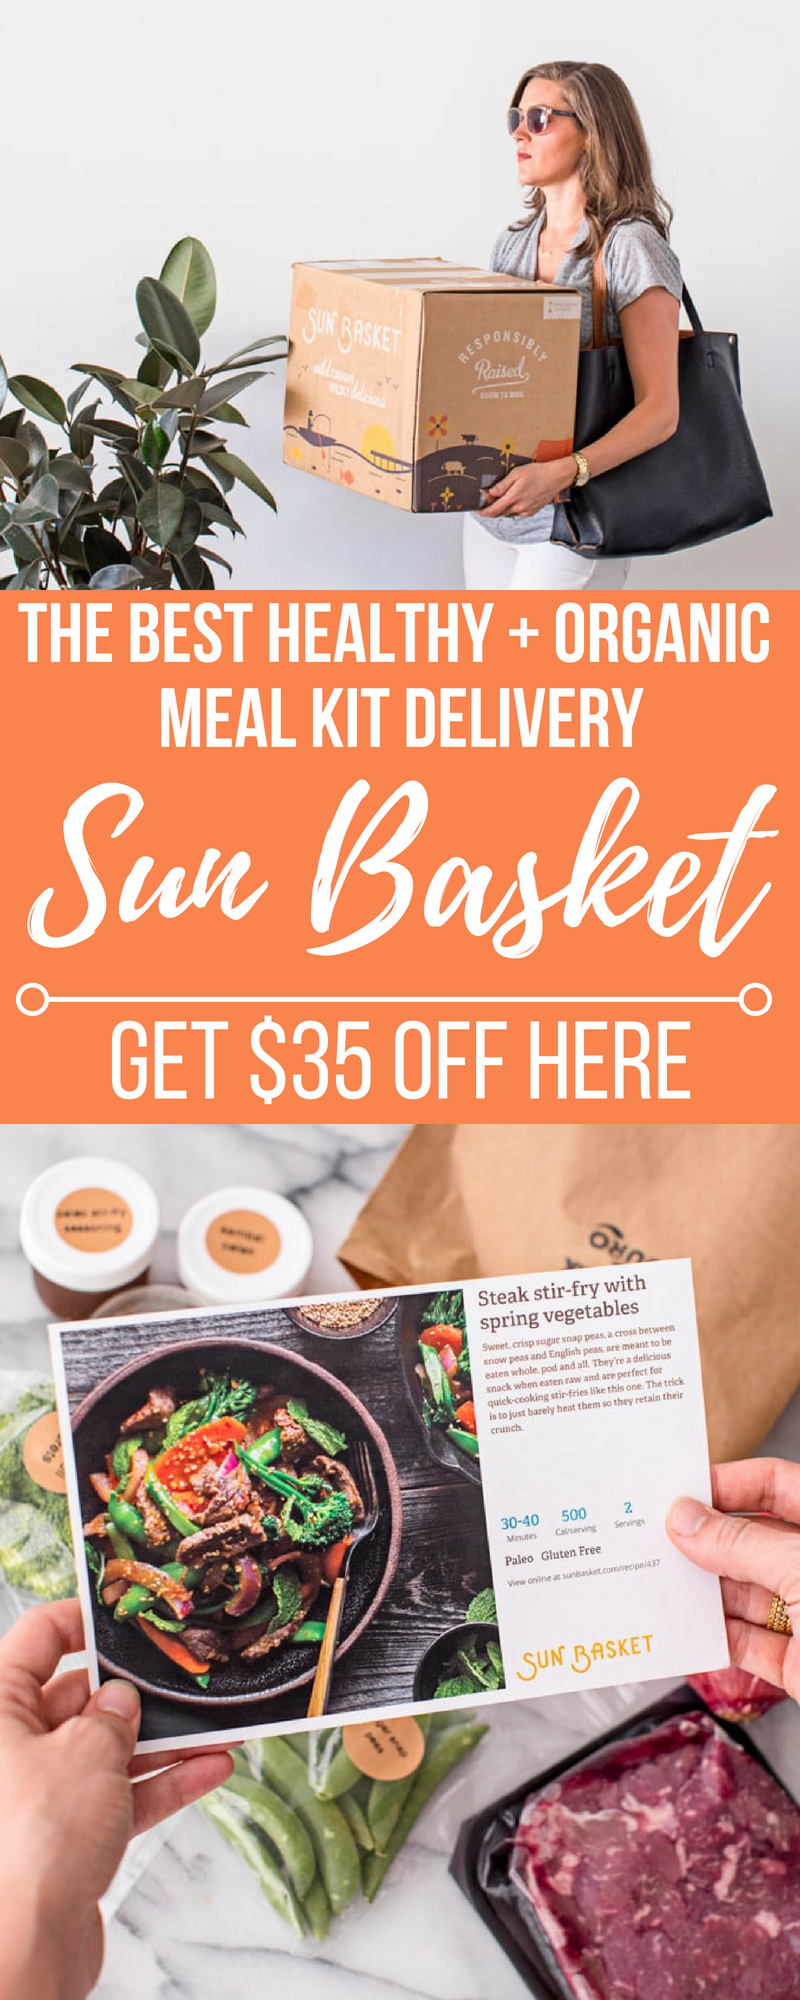 Make Dinner Easy With Sun Basket The Best Healthy Meal Kit Delivery Service Sun Basket Off Organic Recipes Healthy Organic Vegan Recipes Good Healthy Recipes